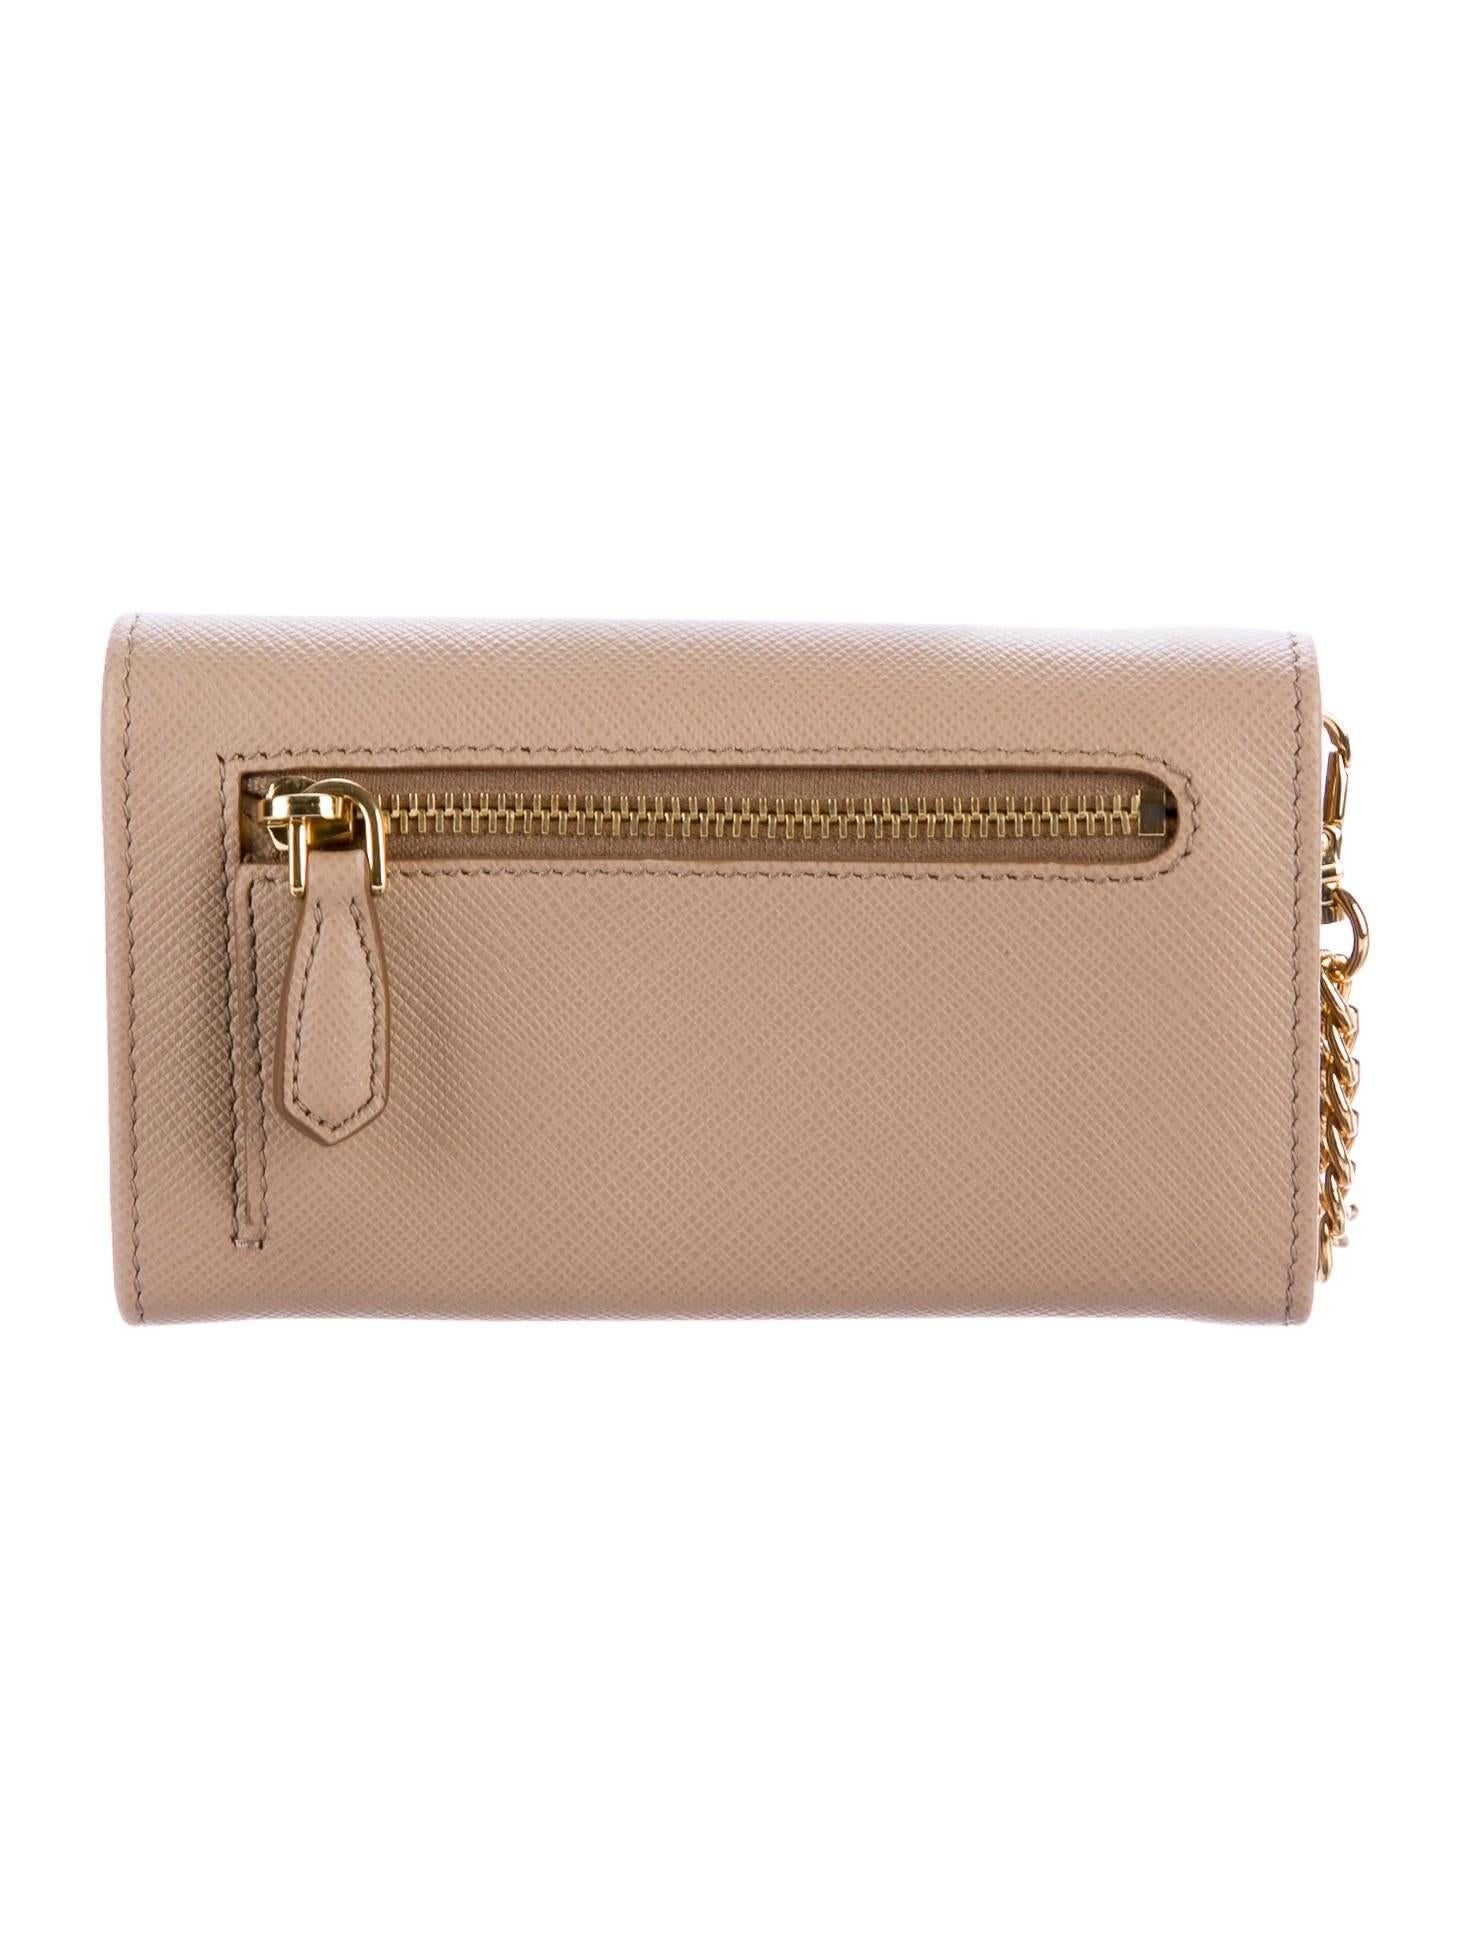 8589cf8e0cc7c2 ... new style prada new nude leather gold 2 in 1 wallet on chain woc clutch  flap